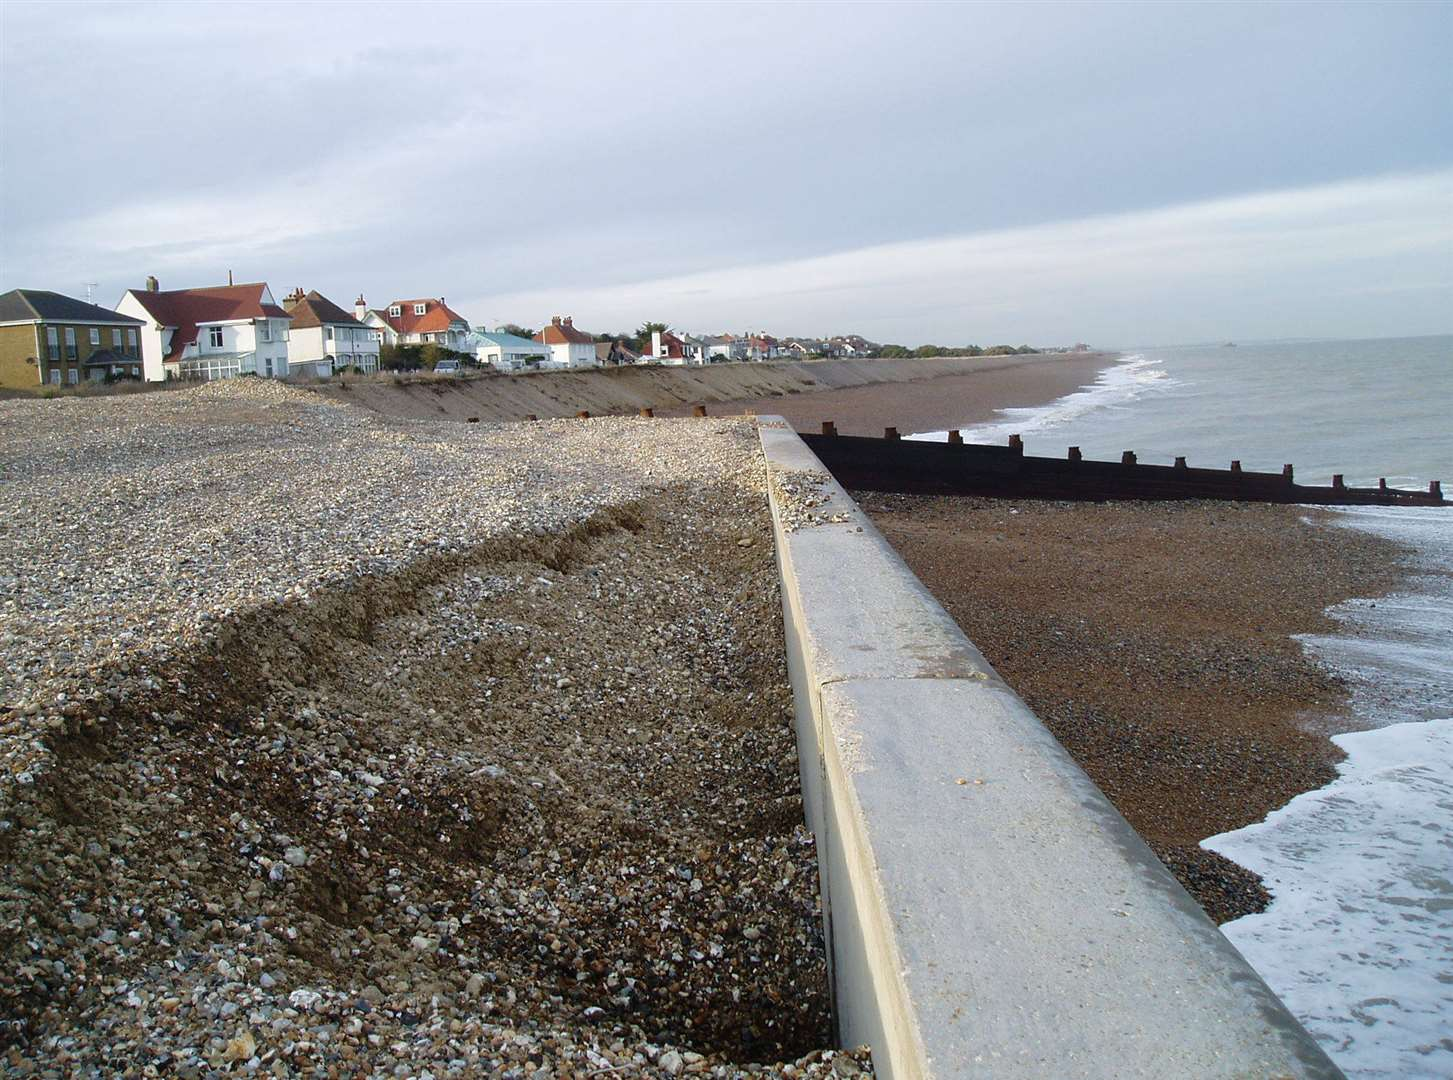 Environment Agency is working on funding sea defences in Kingsdown